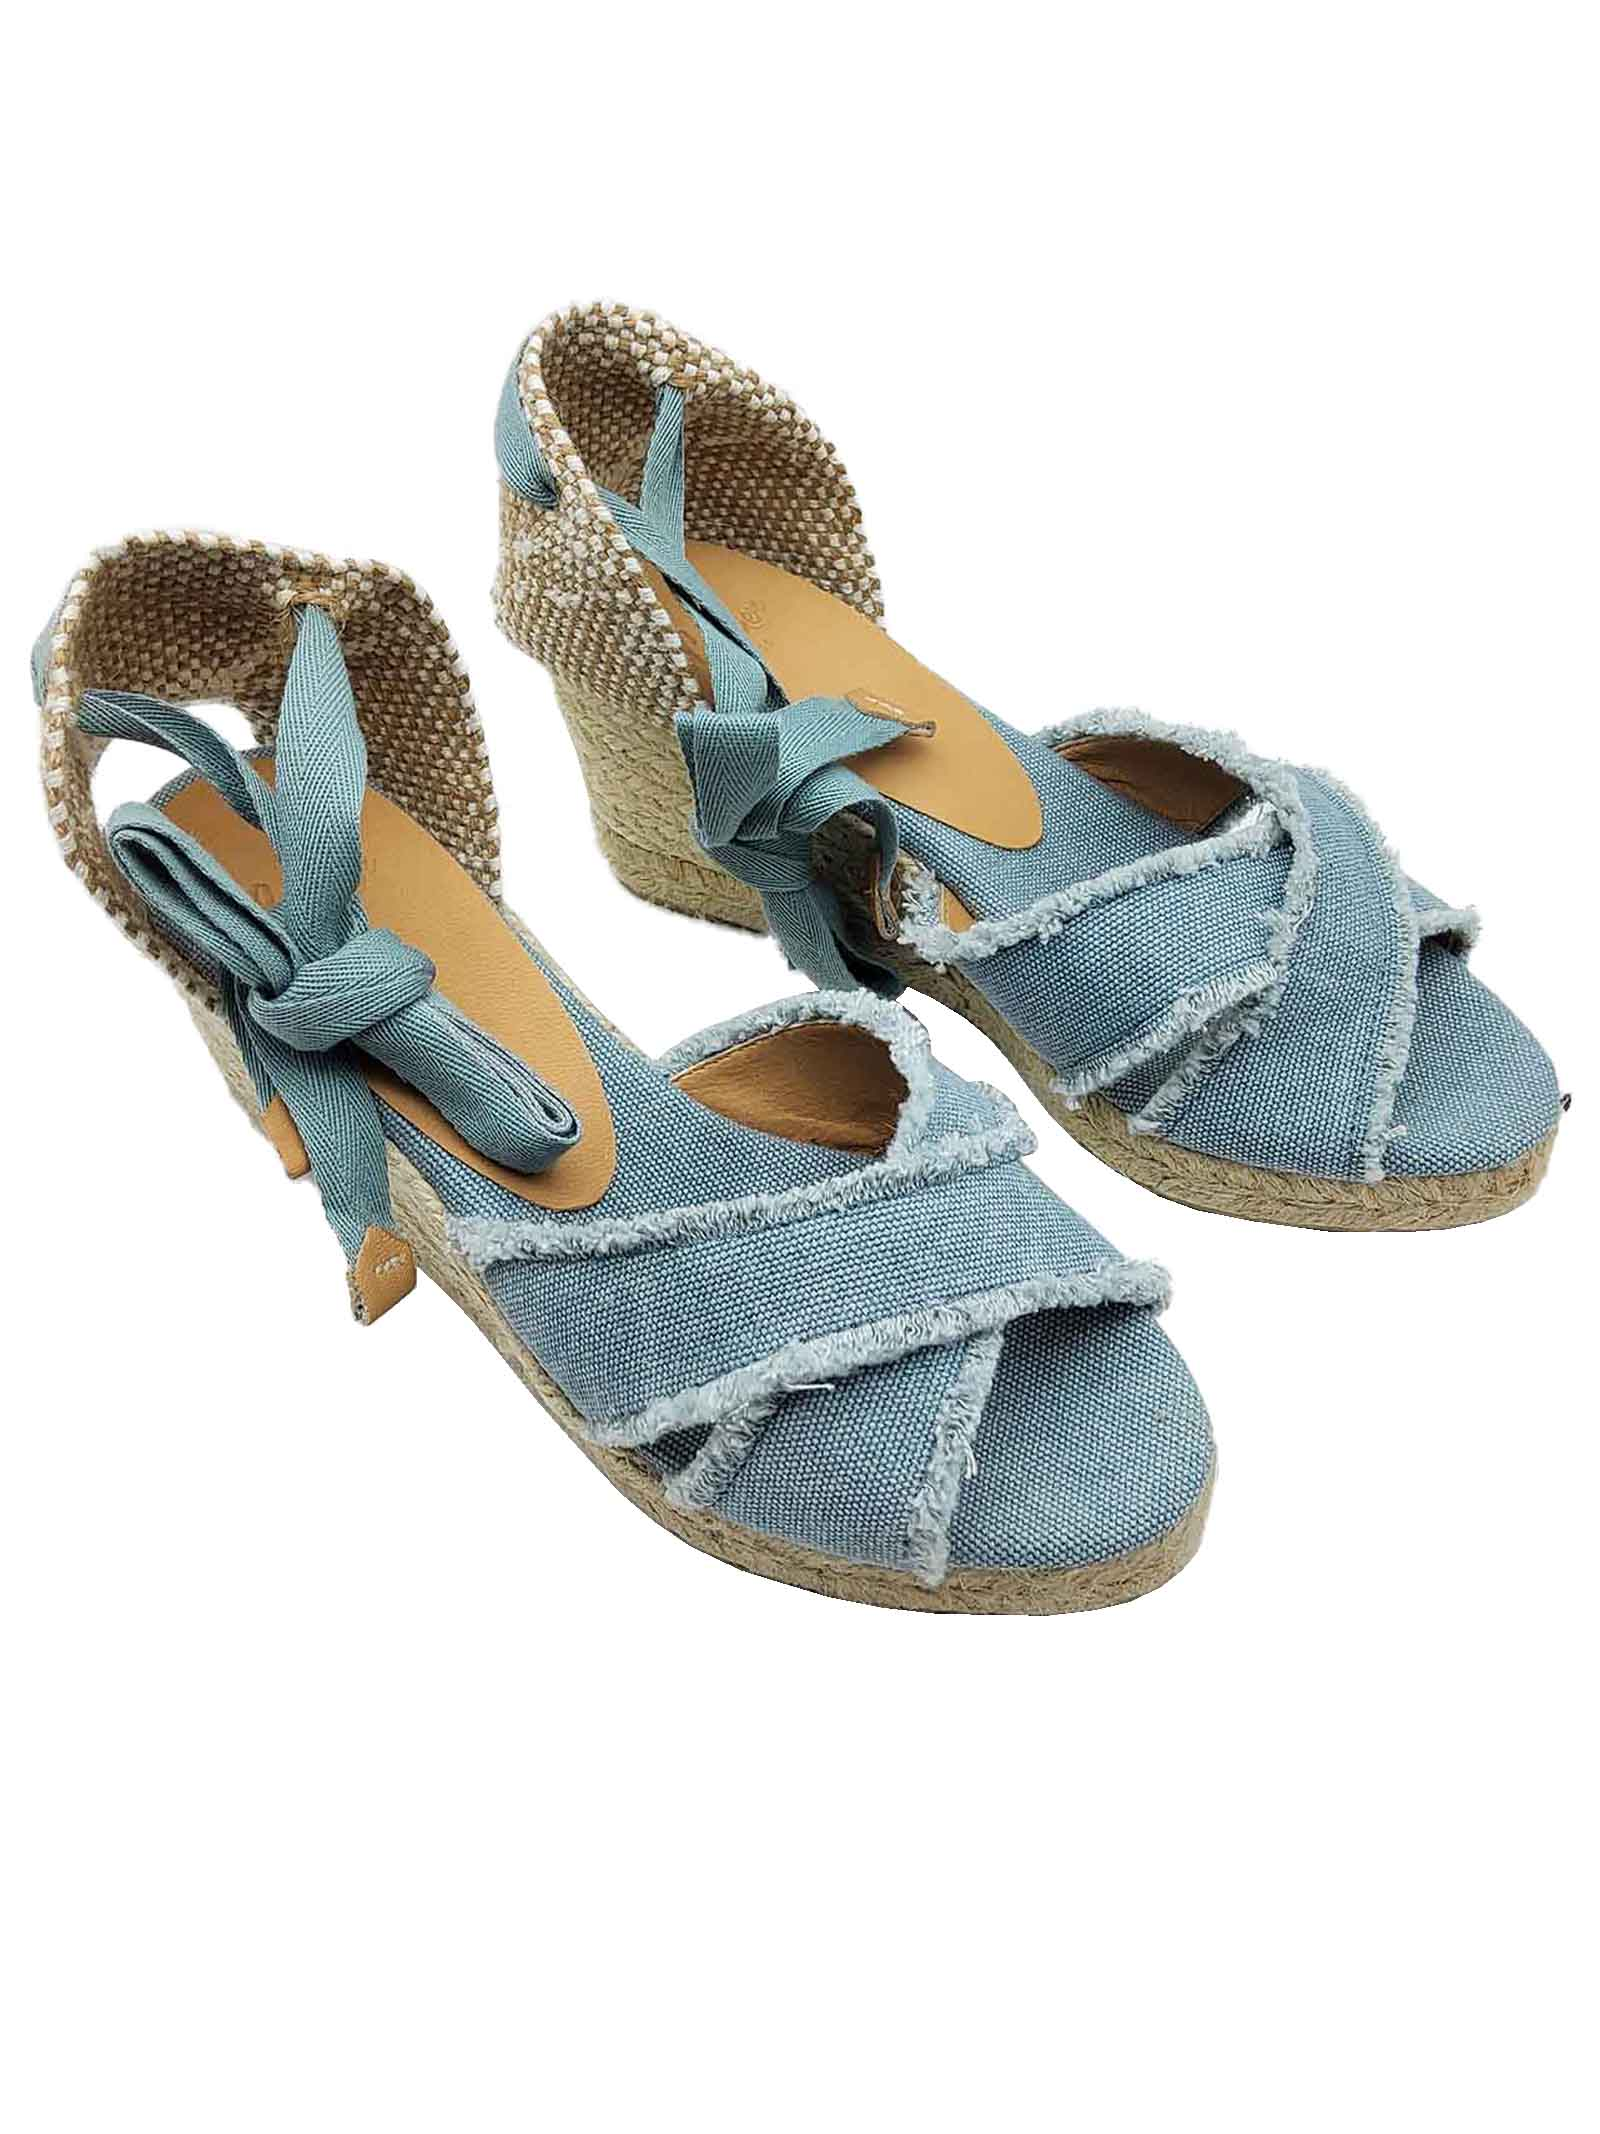 Women's Shoes Sandals Espadrilles in Light Blue Canvas with Laces at the Ankle and Low Wedge in Rope Castaner | Wedge Sandals | BLUMA003